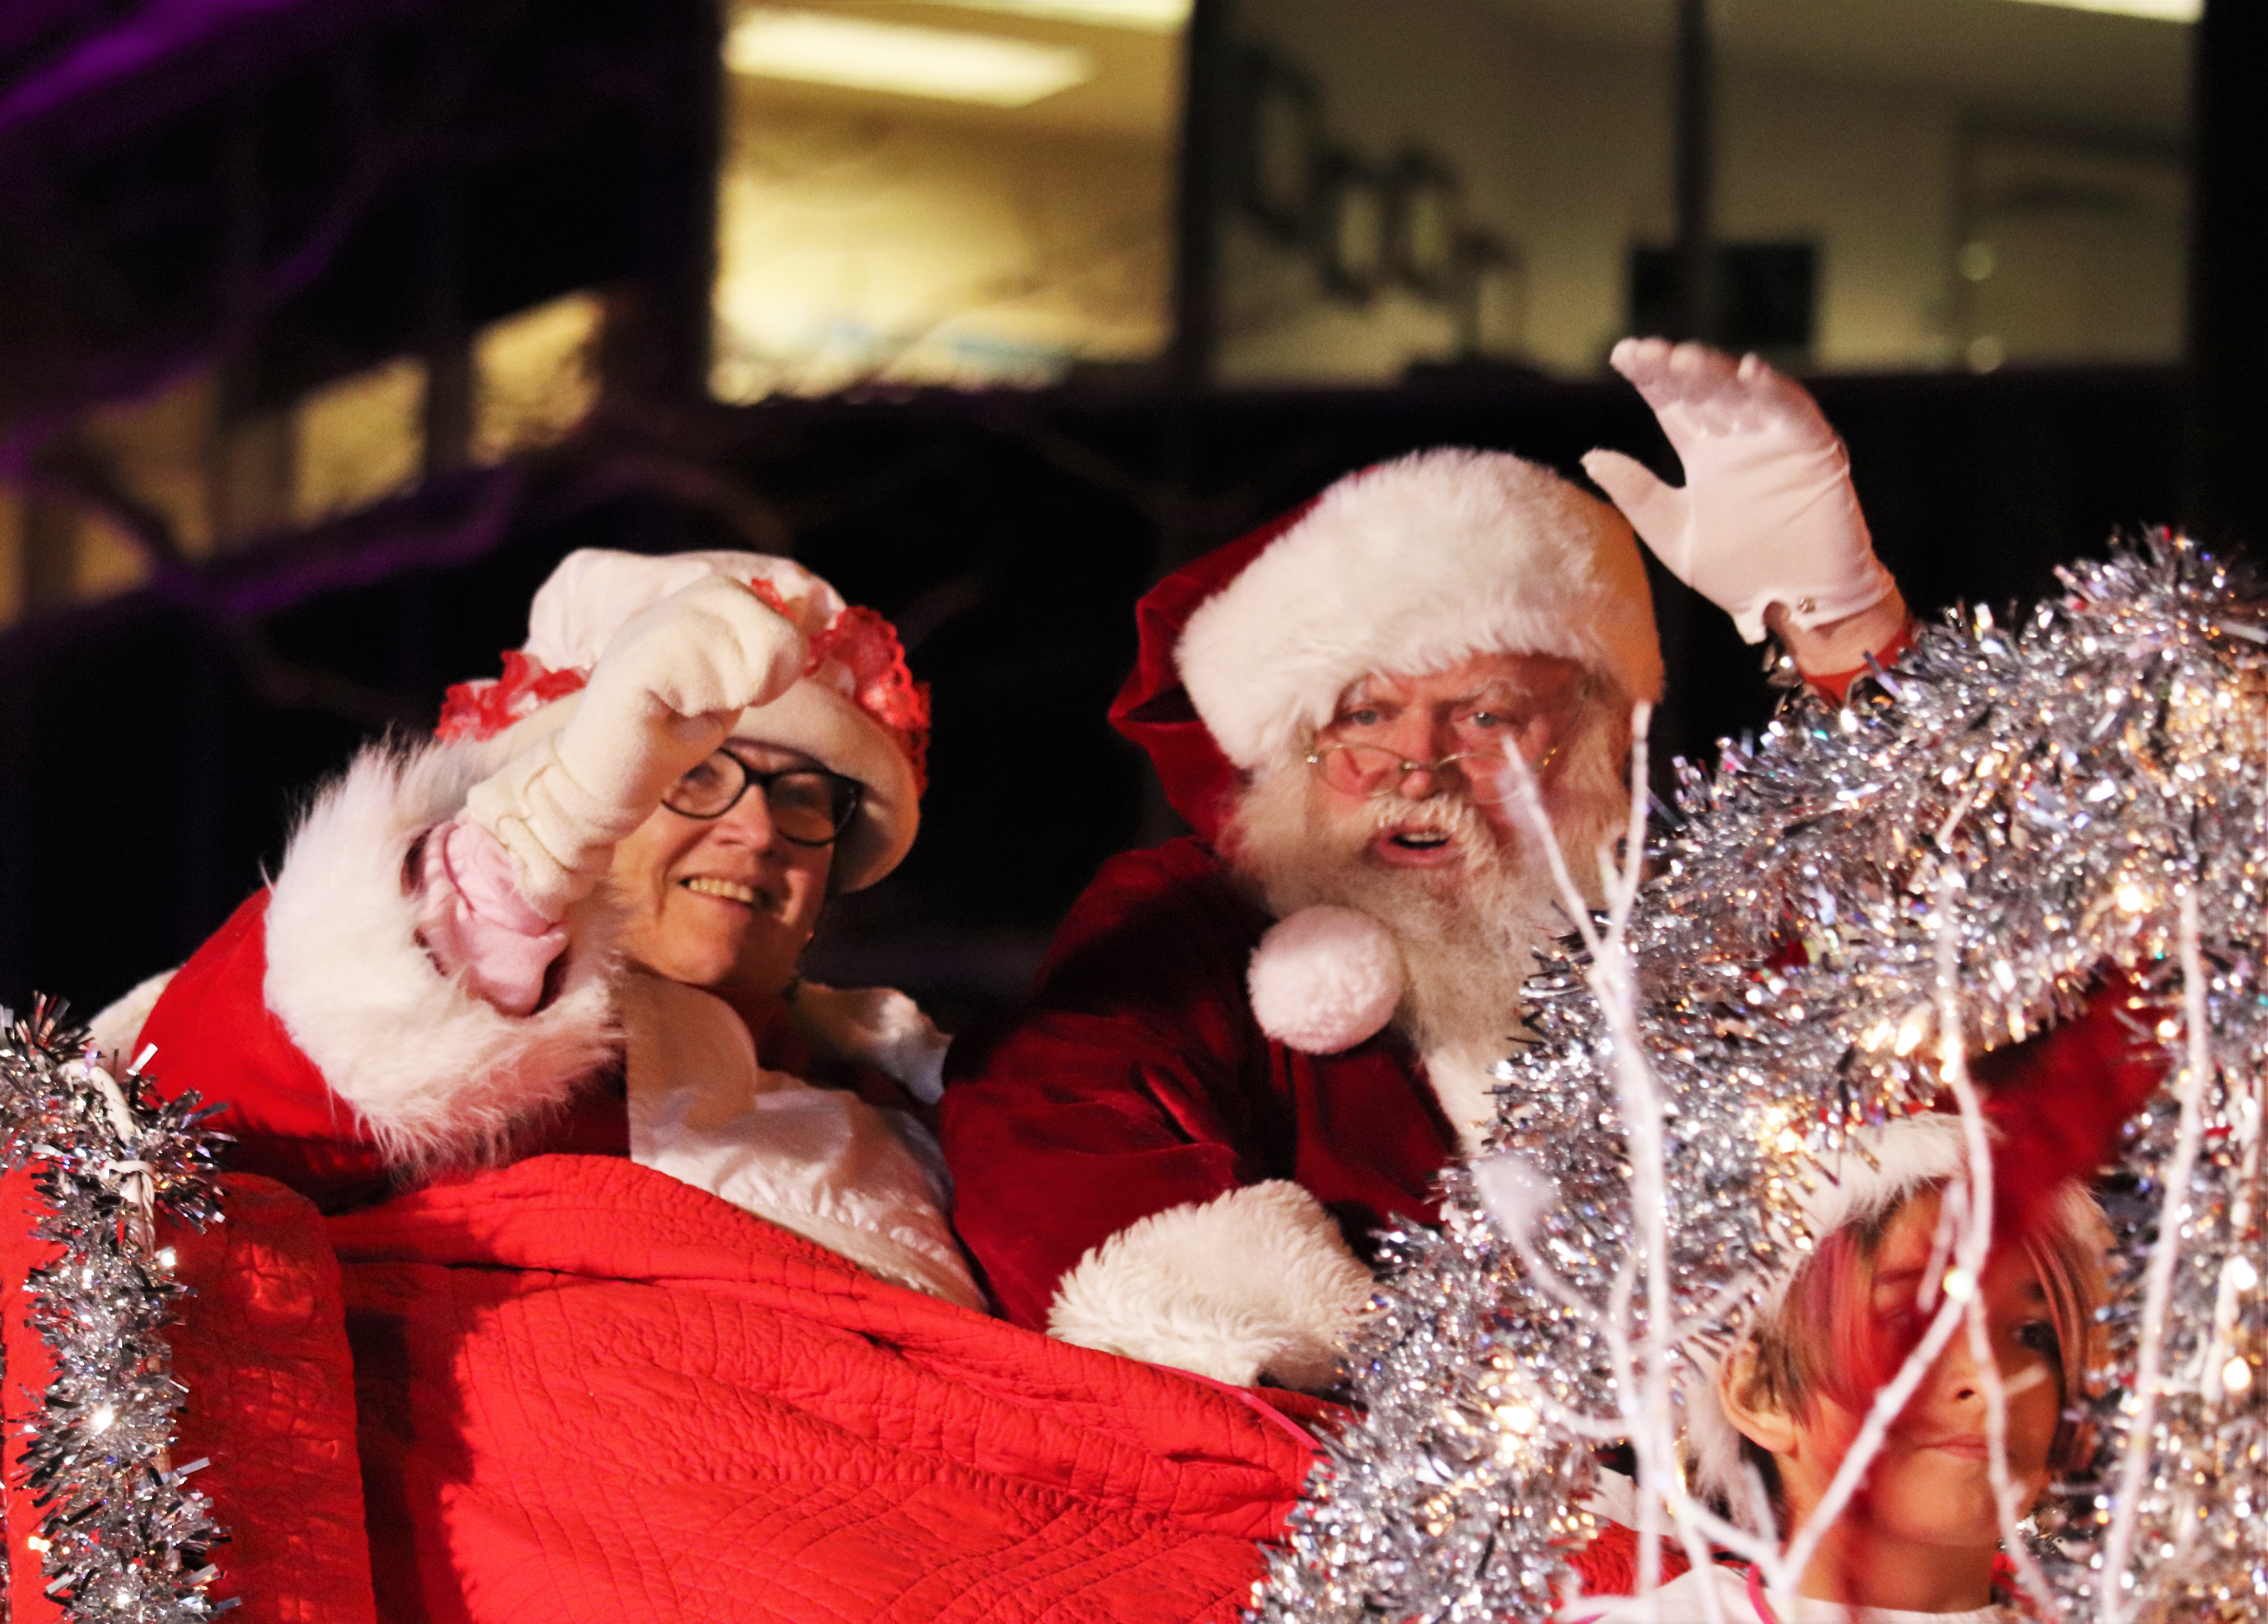 PHOTOS: Santa Claus comes to town (and by town, we mean Kamloops) - Kamloops Matters